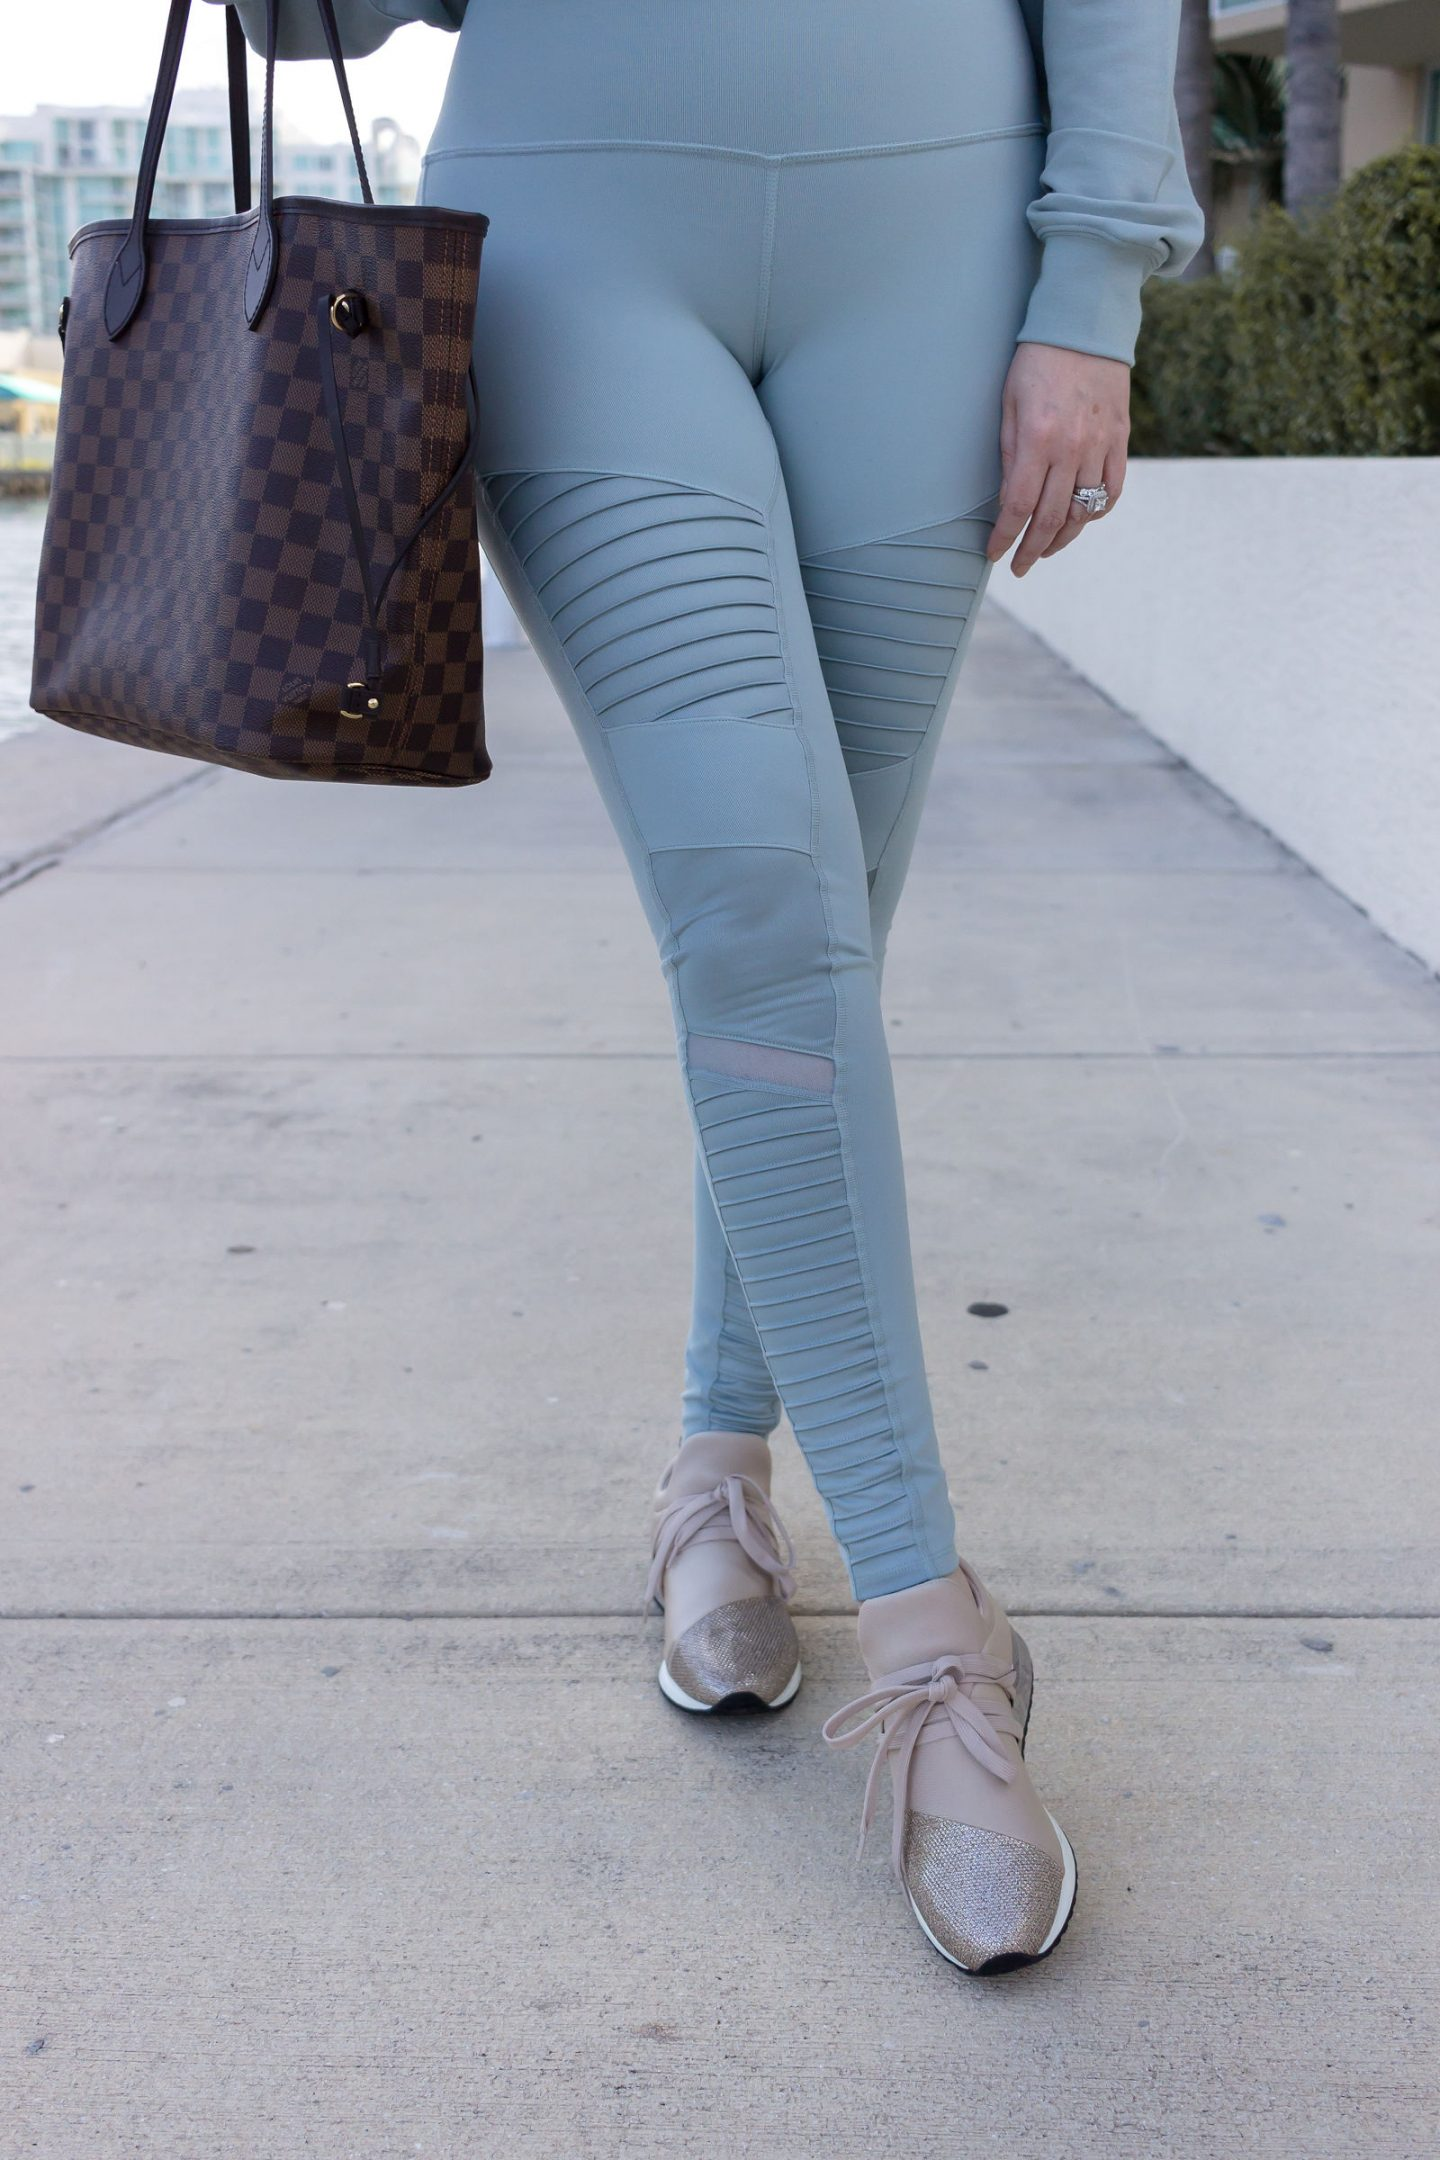 Athleisure Outfit That Will Motivate You To Hit The Gym, alo yoga, nordstrom anniversary sale athleisure, j slides zorro sneakers, louis vuitton neverfull mm damier ebene, alo yoga motto leggings, nsale